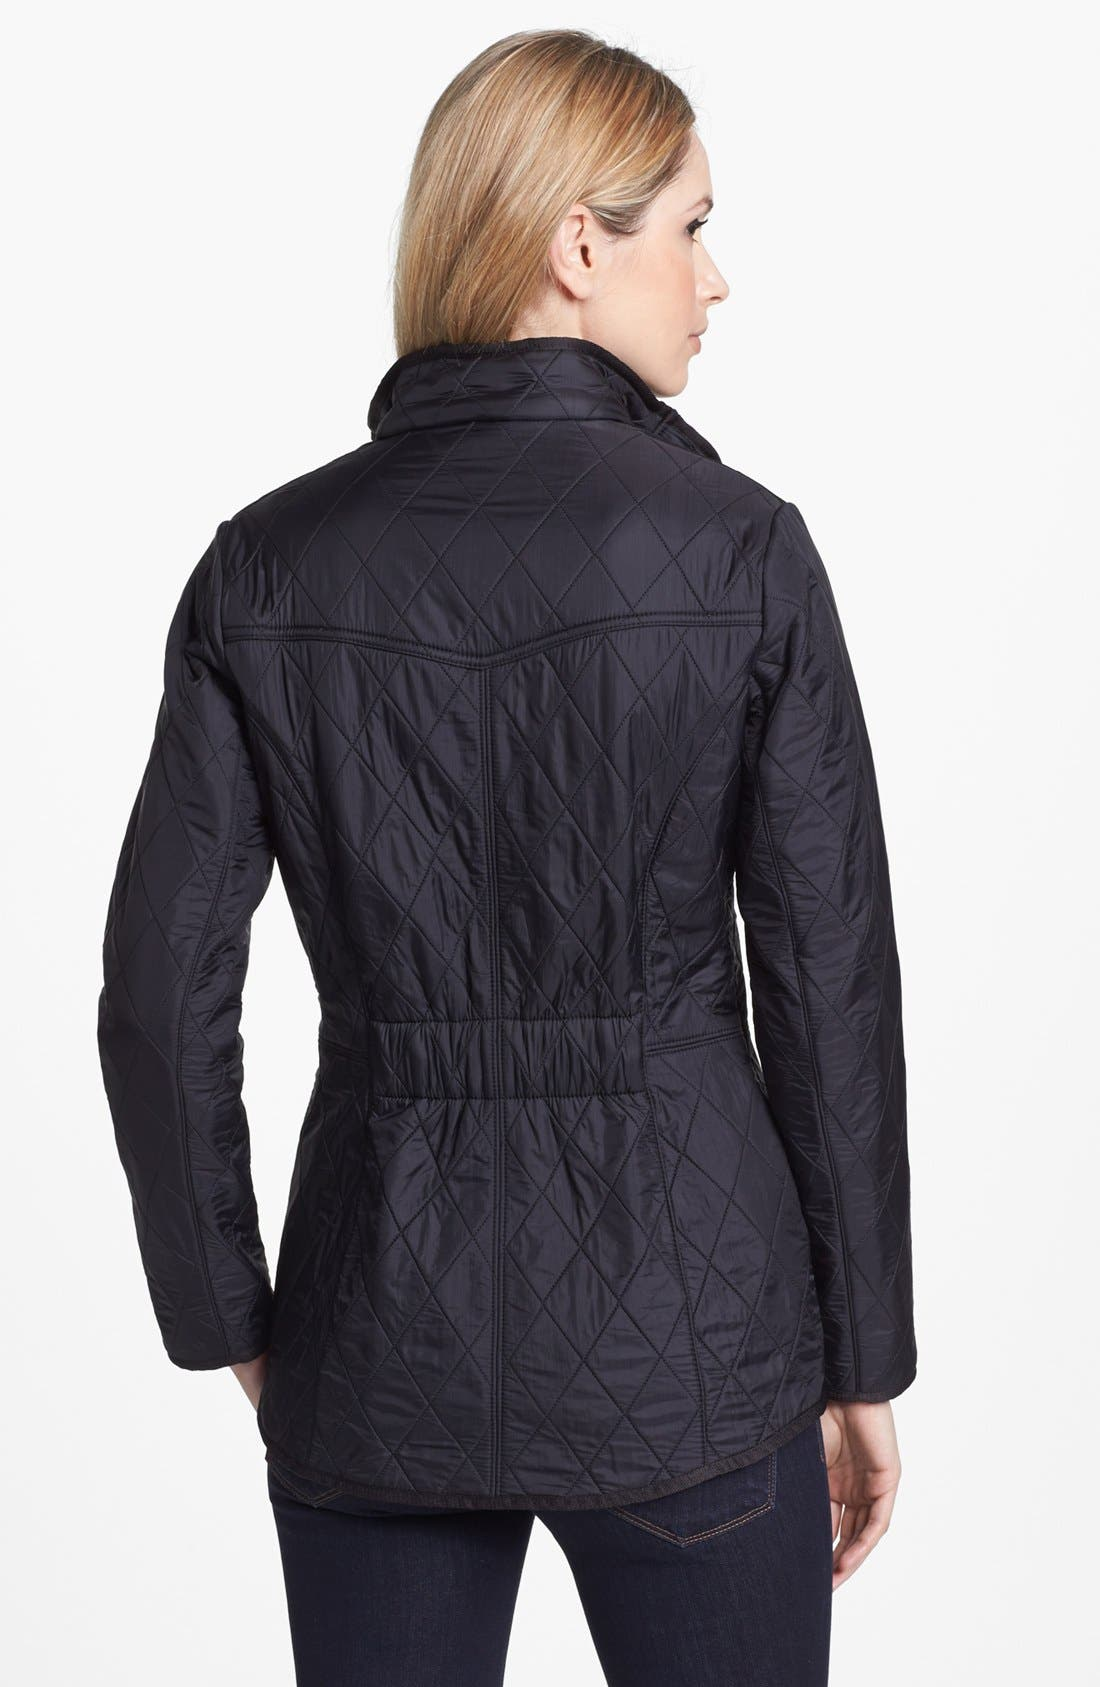 'Cavalry' Quilted Jacket,                             Alternate thumbnail 8, color,                             001